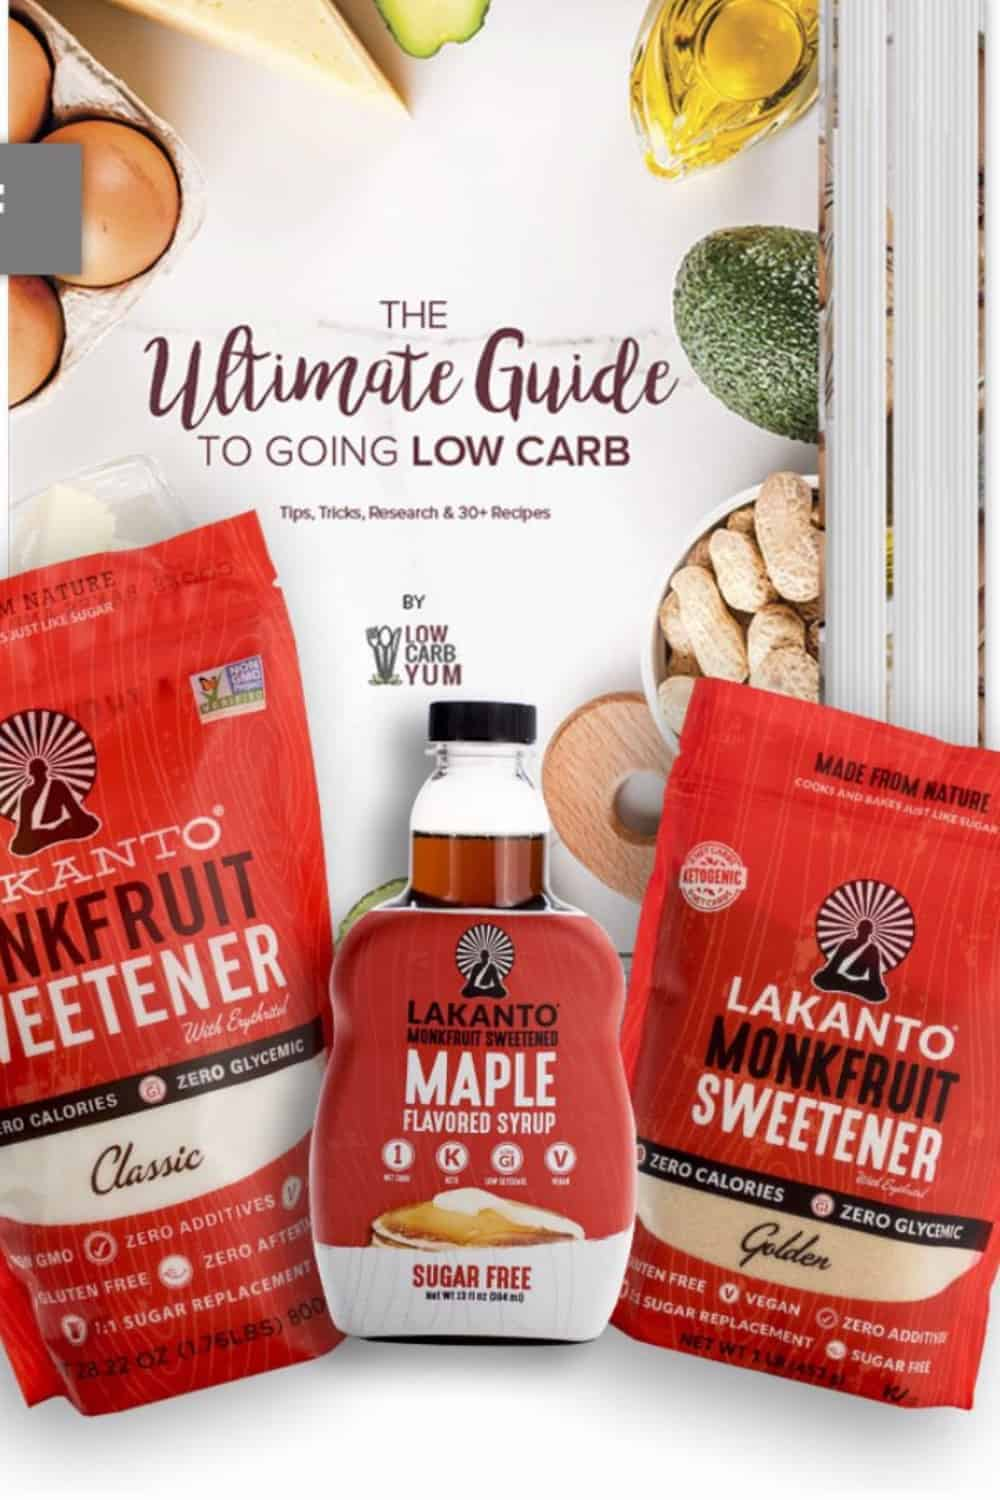 The Ultimate Guide to Going Low Carb Yum and Lakanto Sweetener and maple syrup